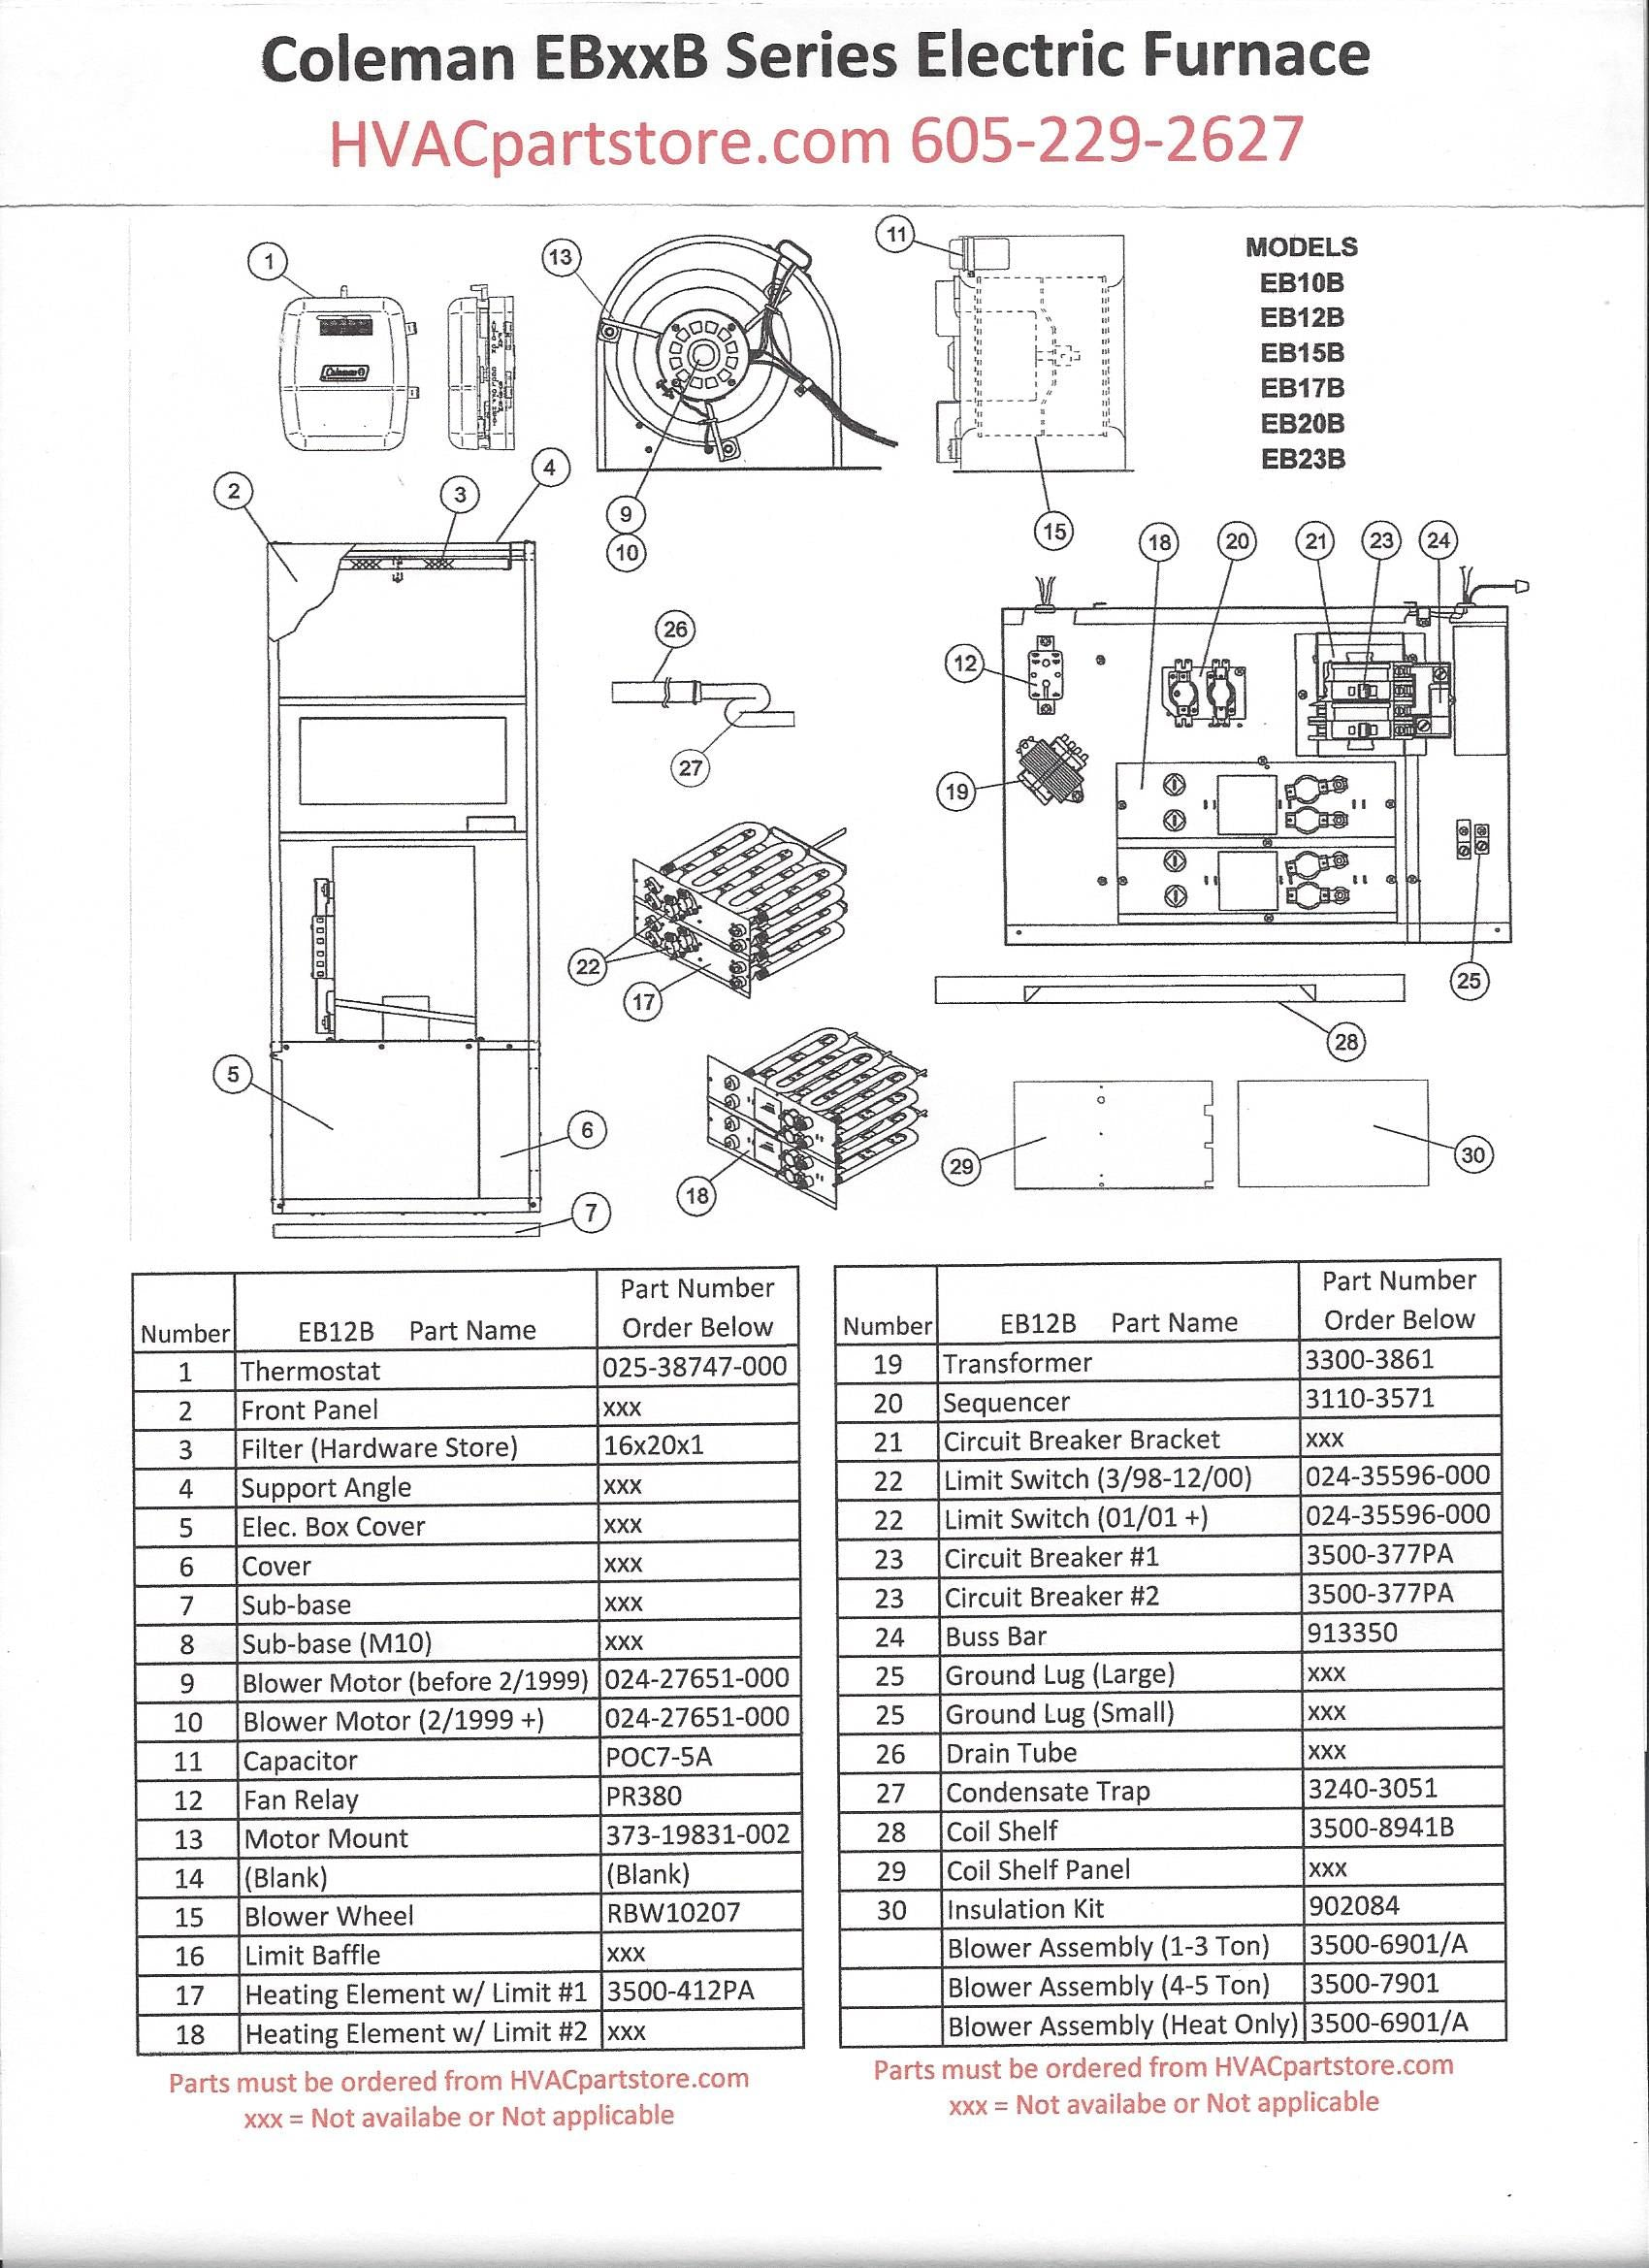 Gas Pack Wiring Diagram in addition 522311 Carrier Ac Heat Pump Runs Few Minutes Stops moreover How Do I Identify The C Terminal On My Hvac together with White Rodgers Furnace Control Board Wiring Diagram further 3n1l9 Need Wiring Diagram Furnace Blower Model E2eh 015ha. on trane heat pump thermostat wiring